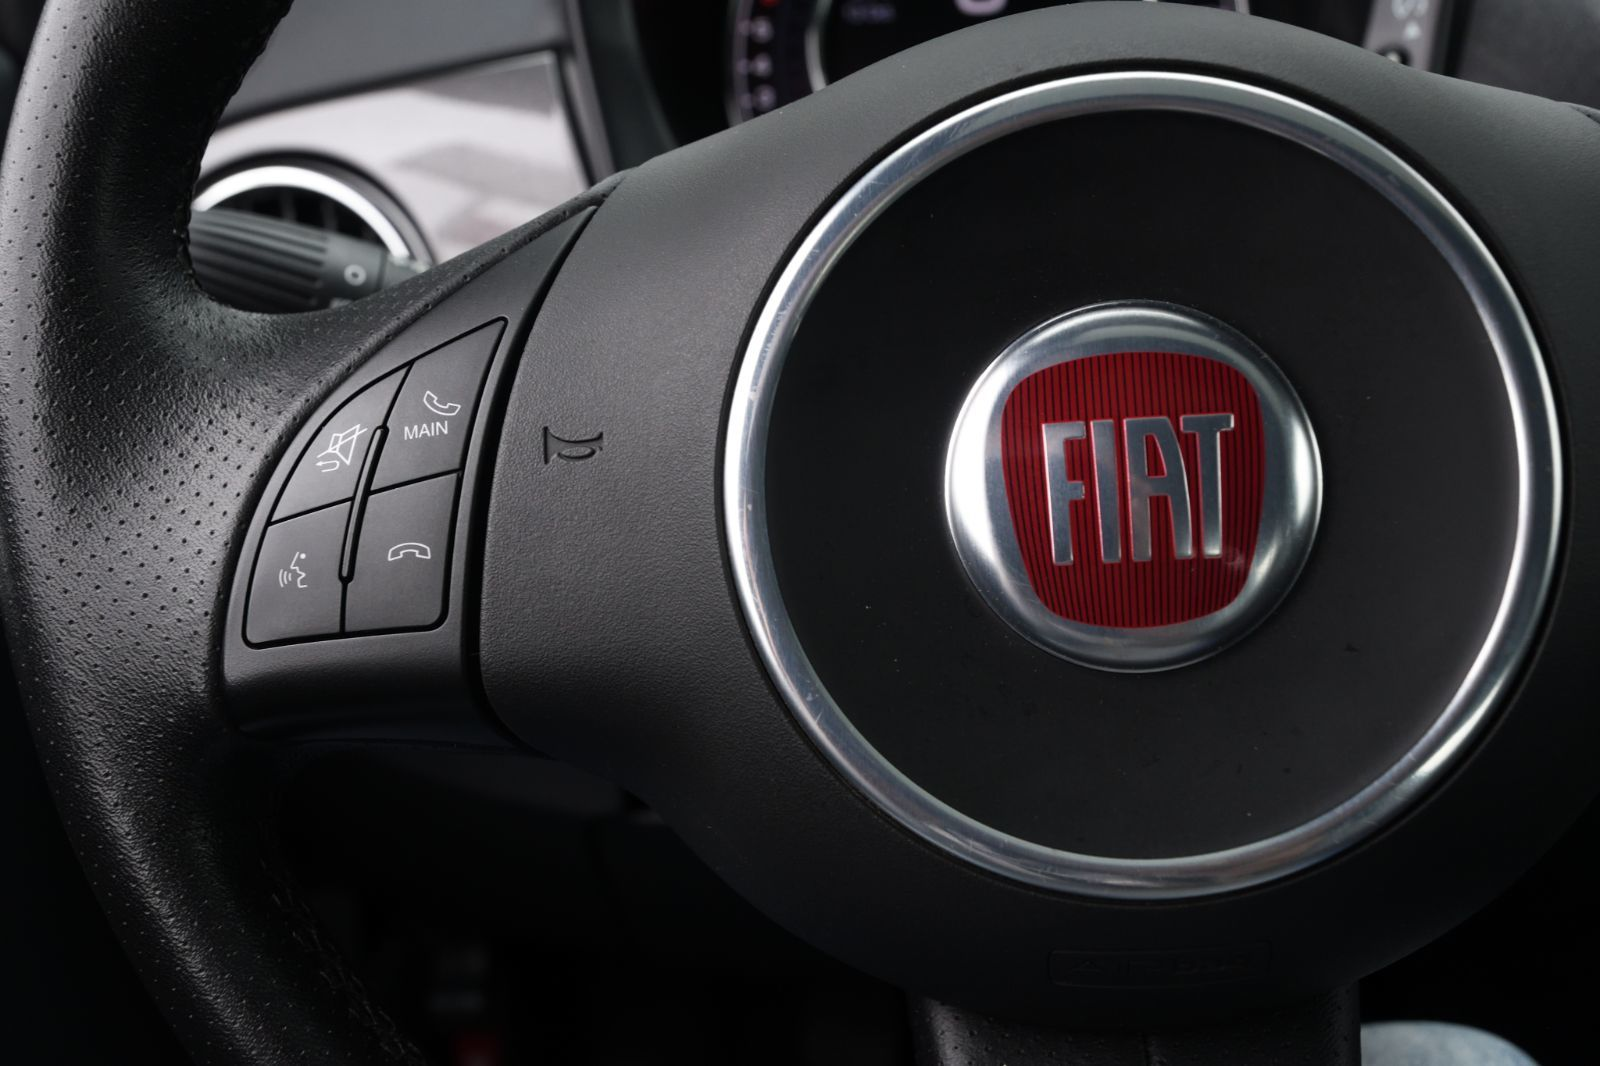 2016 Fiat 500 complet